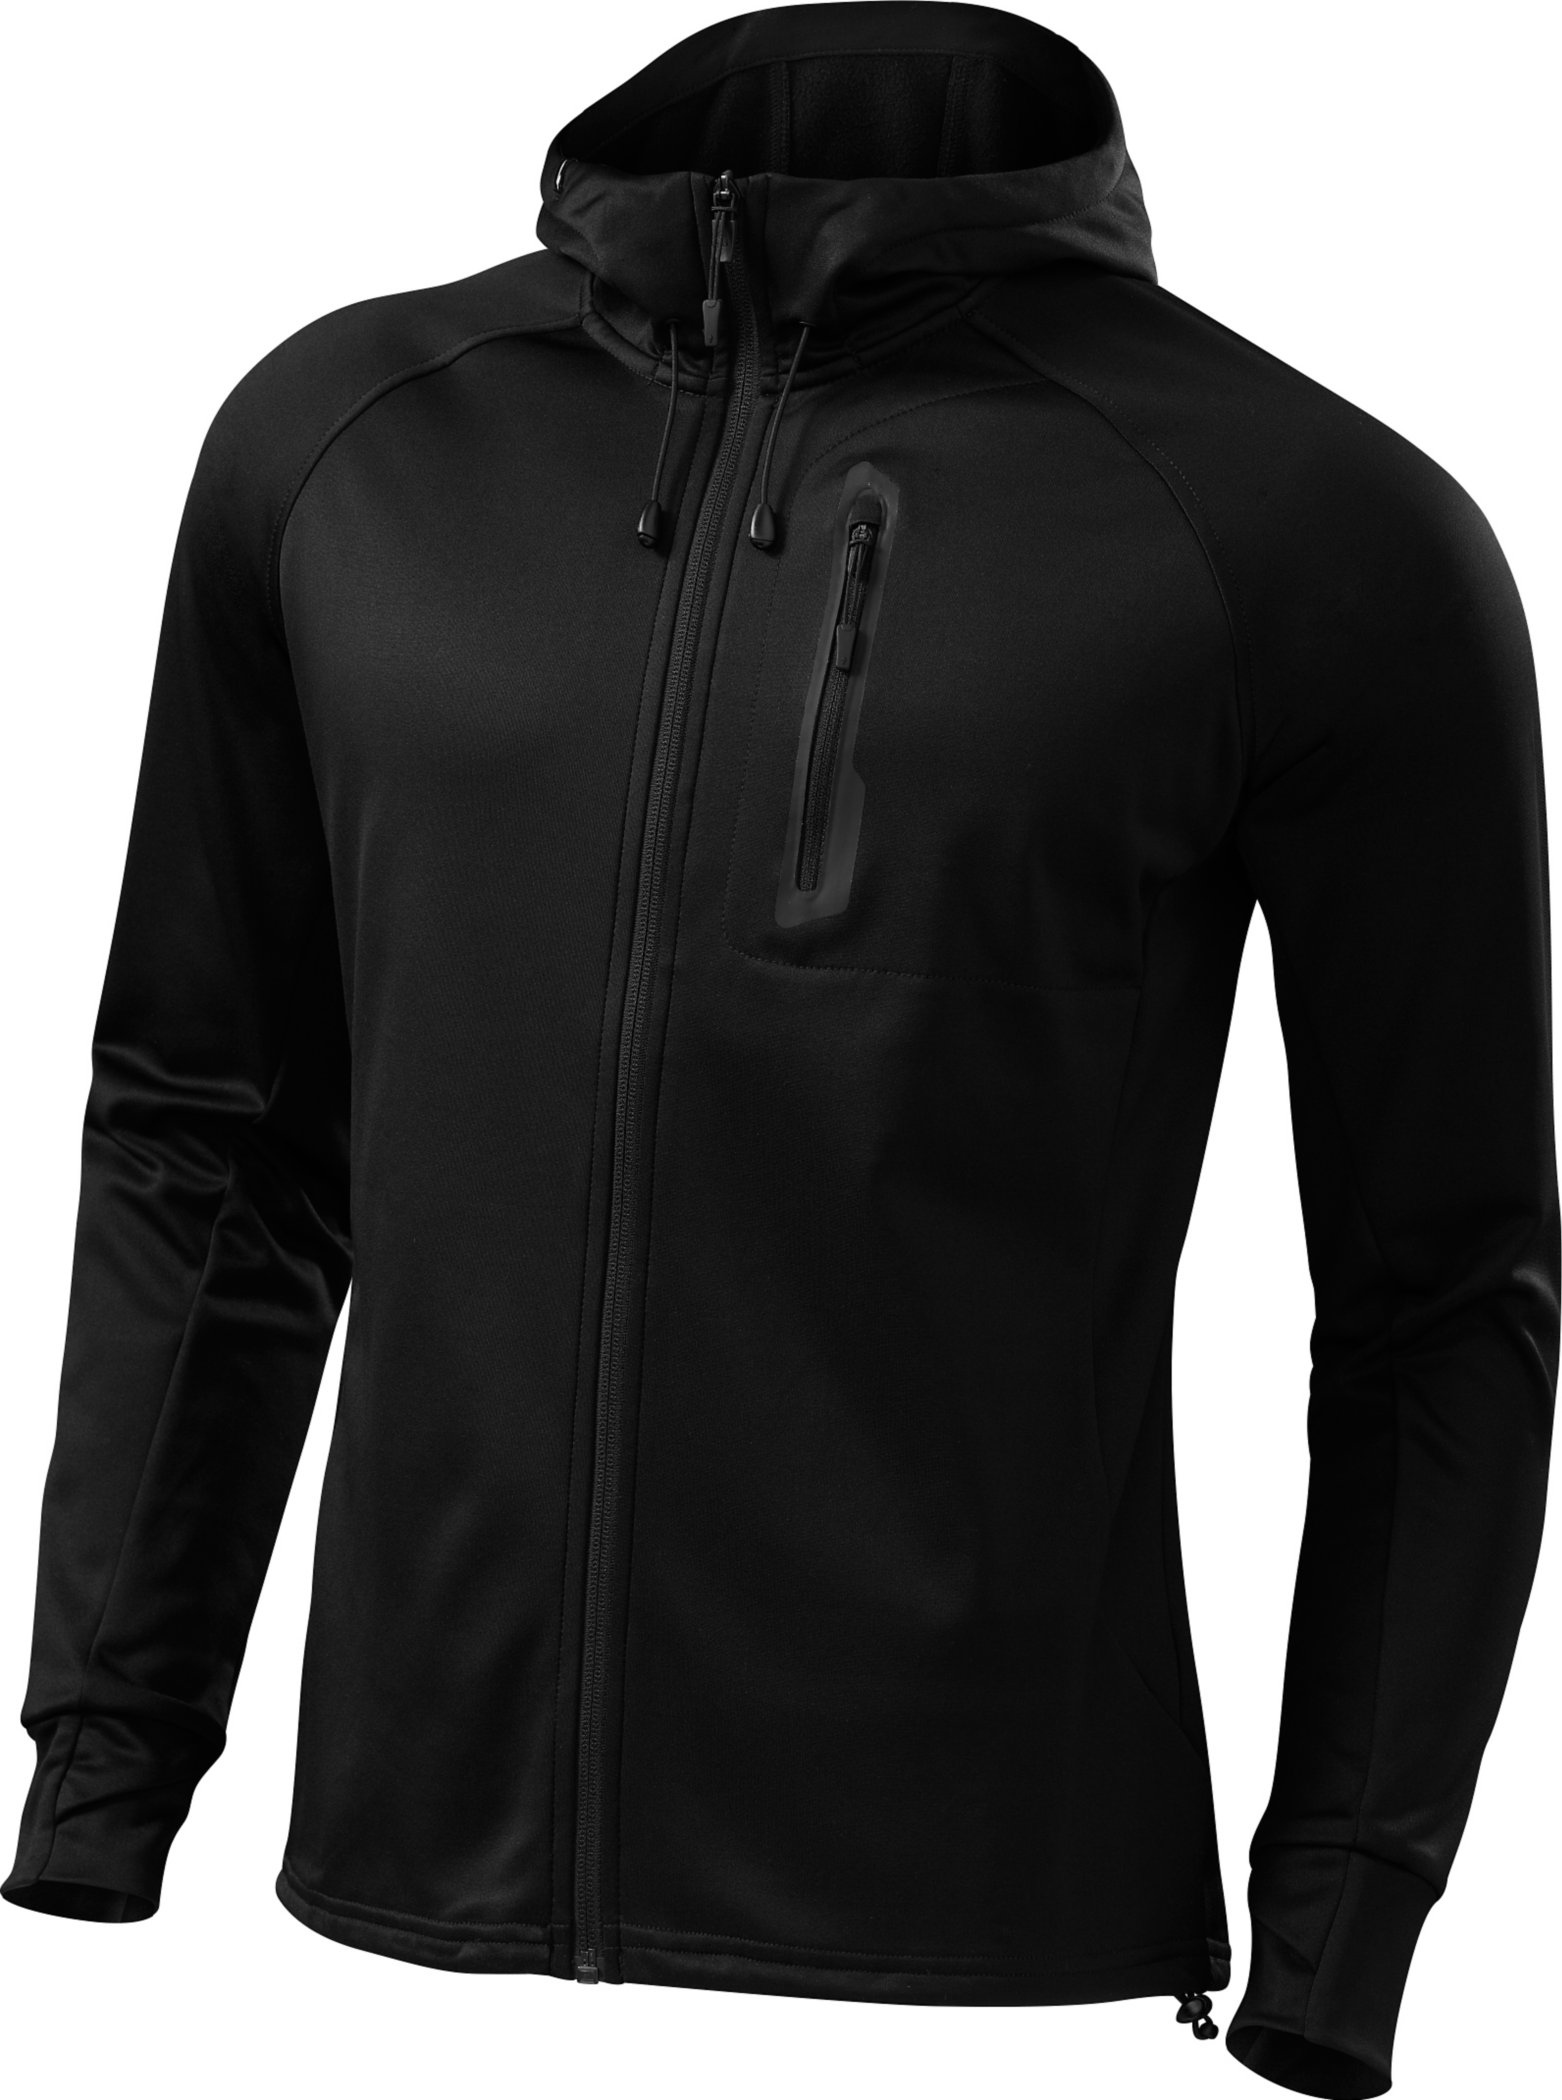 Specialized Therminal Mountain Jersey Black XX-Large - Alpha Bikes